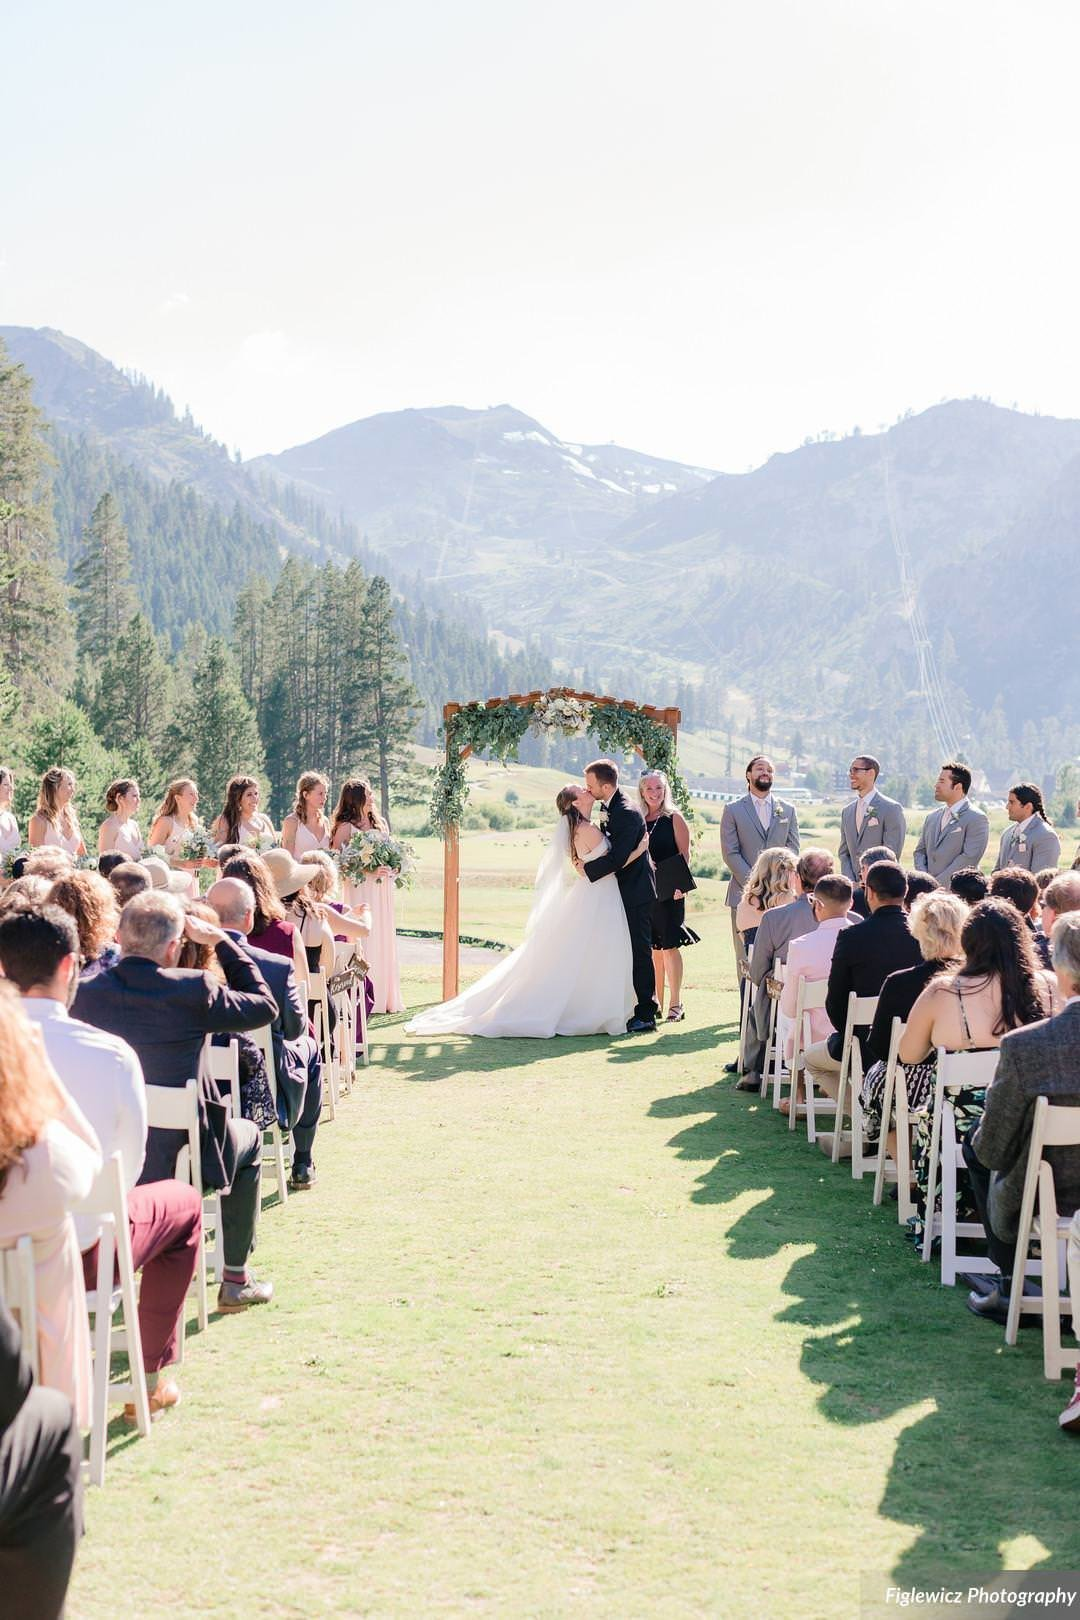 Garden_Tinsley_FiglewiczPhotography_LakeTahoeWeddingSquawValleyCreekTaylorBrendan00108_big